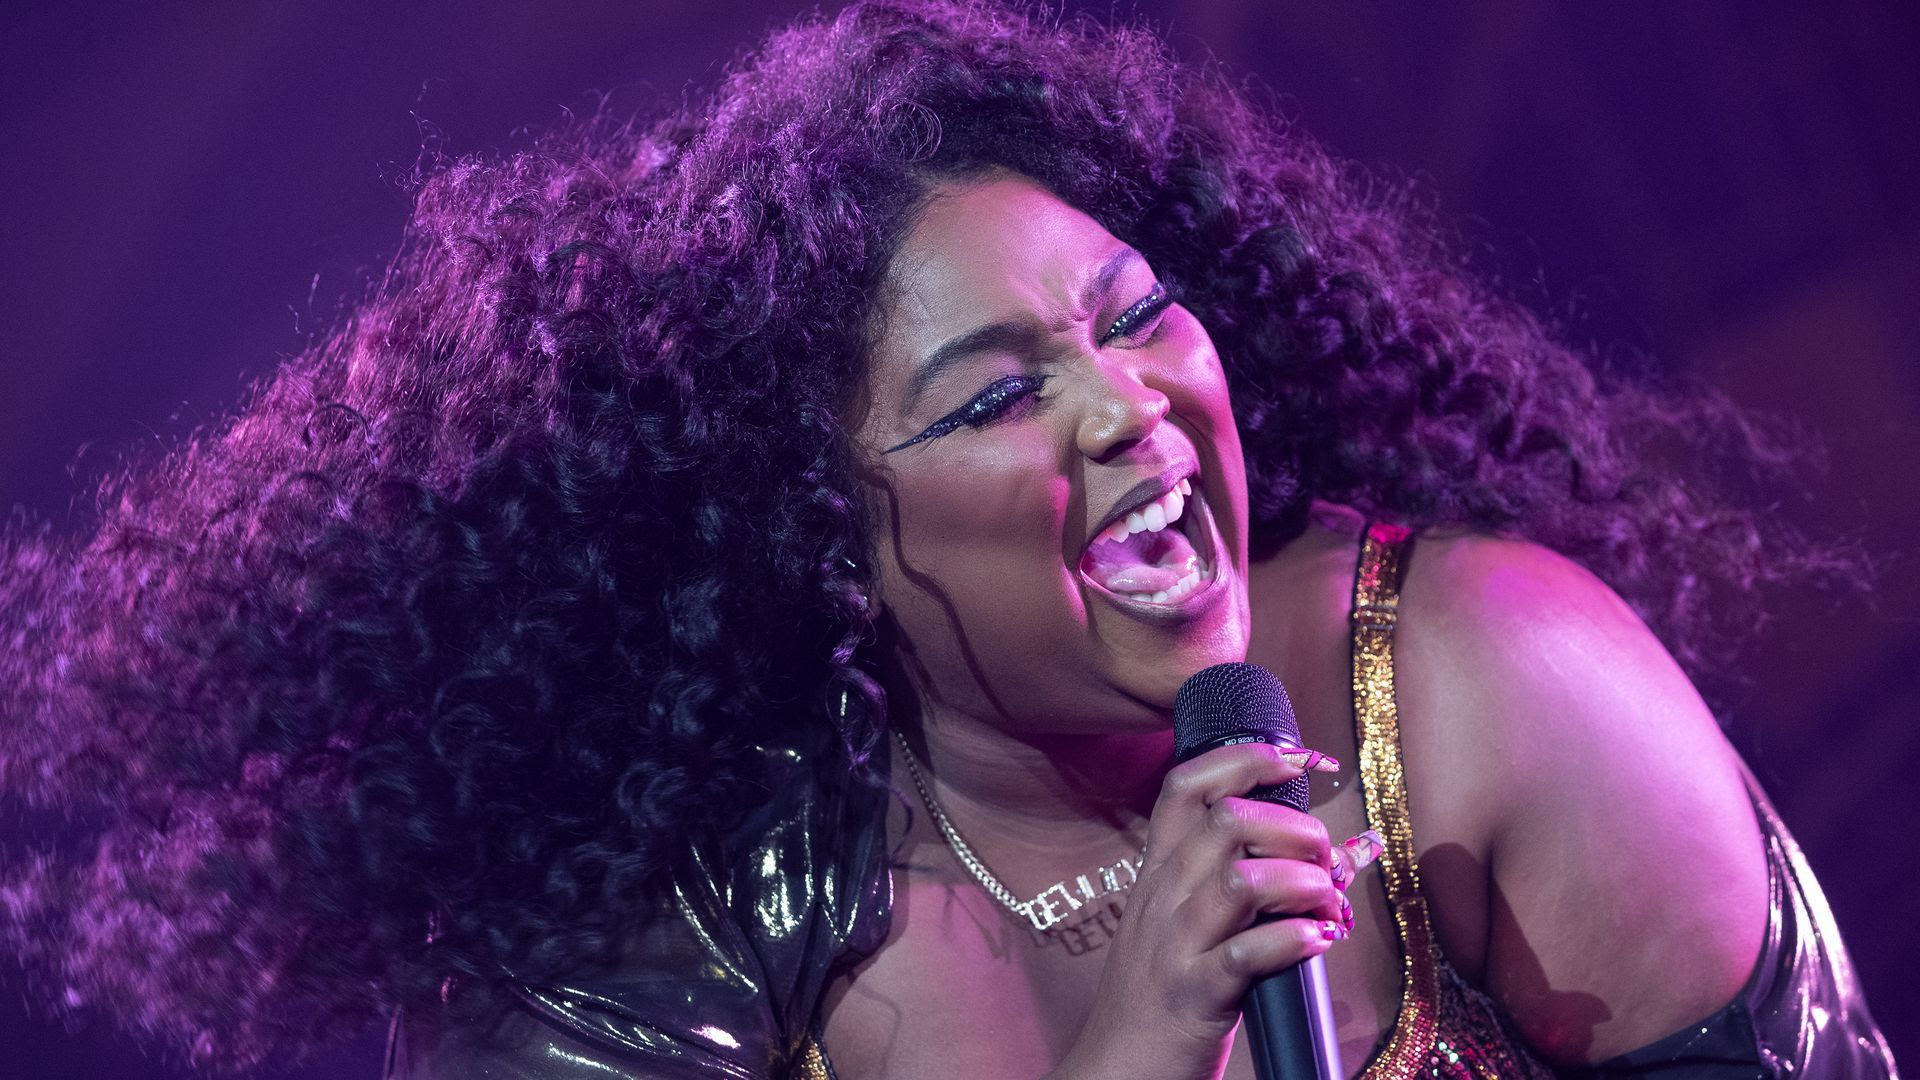 Lizzo sings into a microphone with purple light shining on her face.